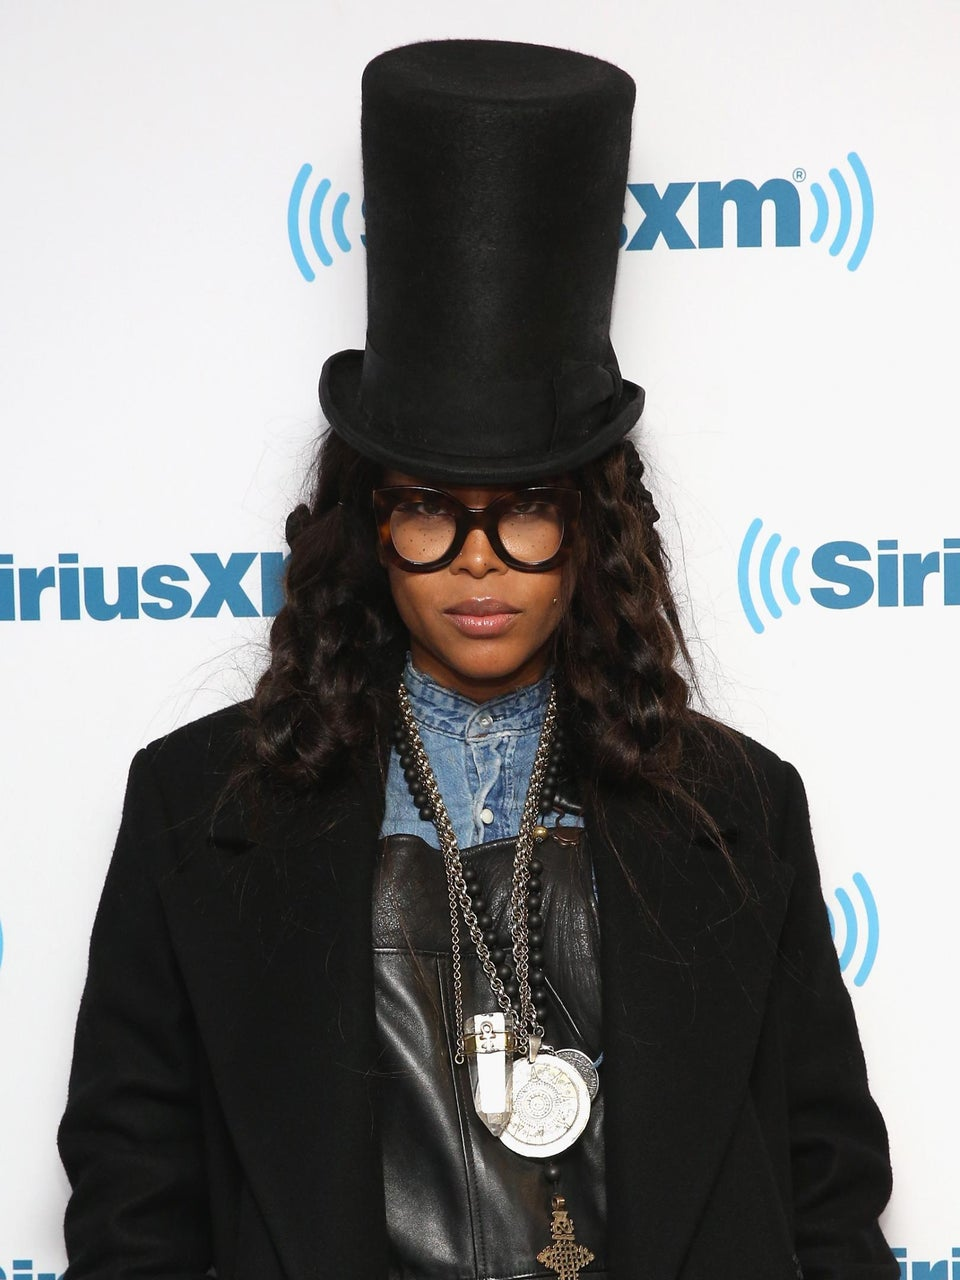 Just In Time For Holiday Chill: Erykah Badu's Mixtape Will Be Out This Friday